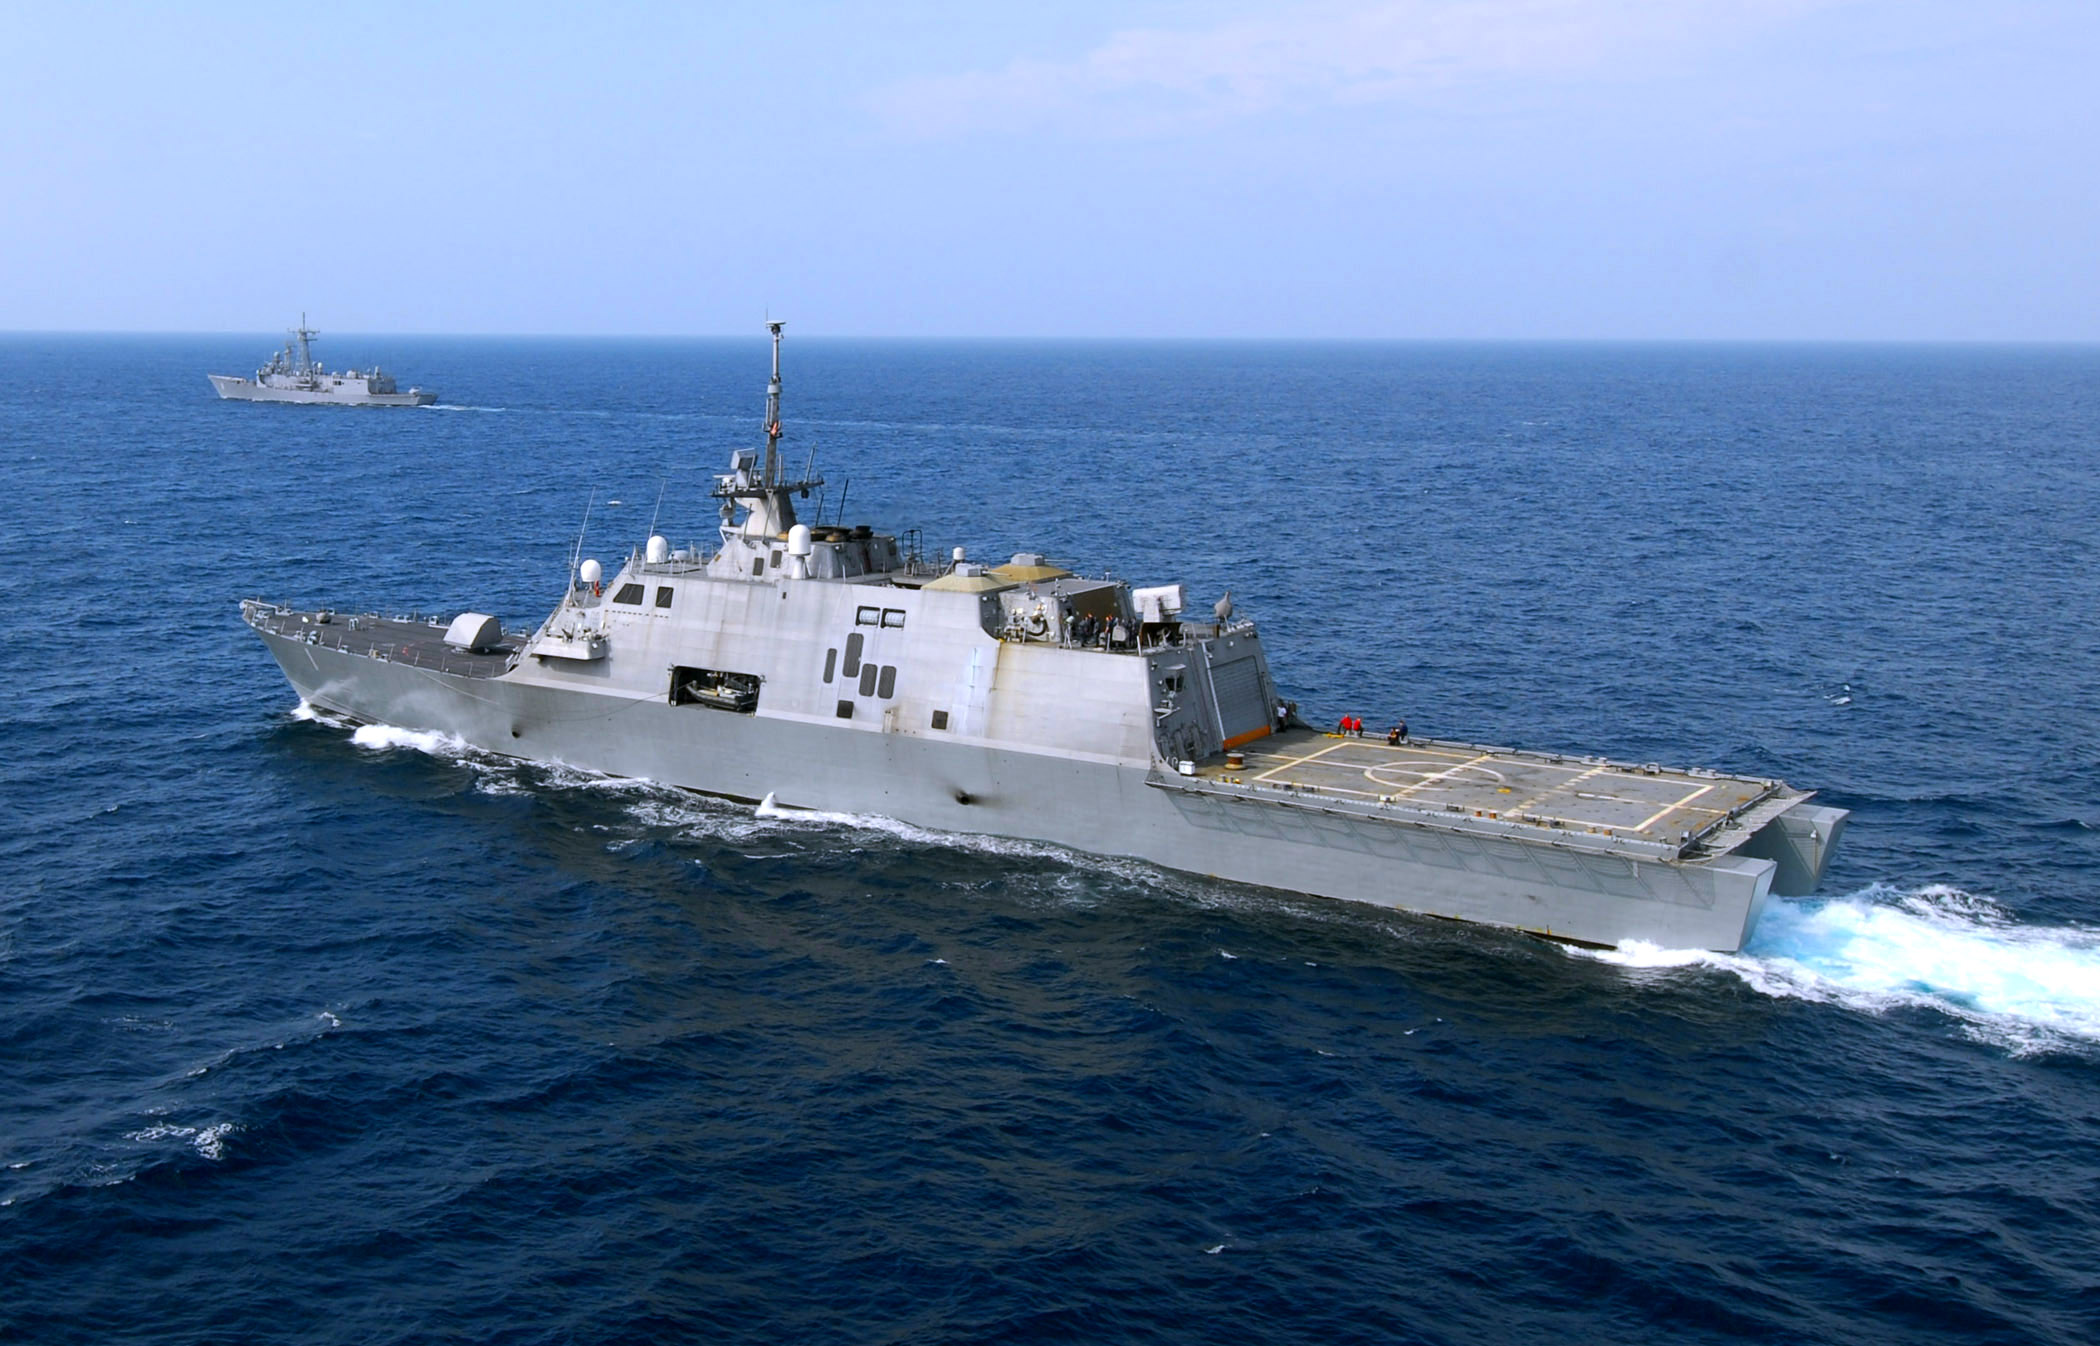 File us navy 100330 n 7058e 372 uss freedom lcs 1 maneuvers off the port quarter of the guided - Uss freedom lcs 1 photos ...